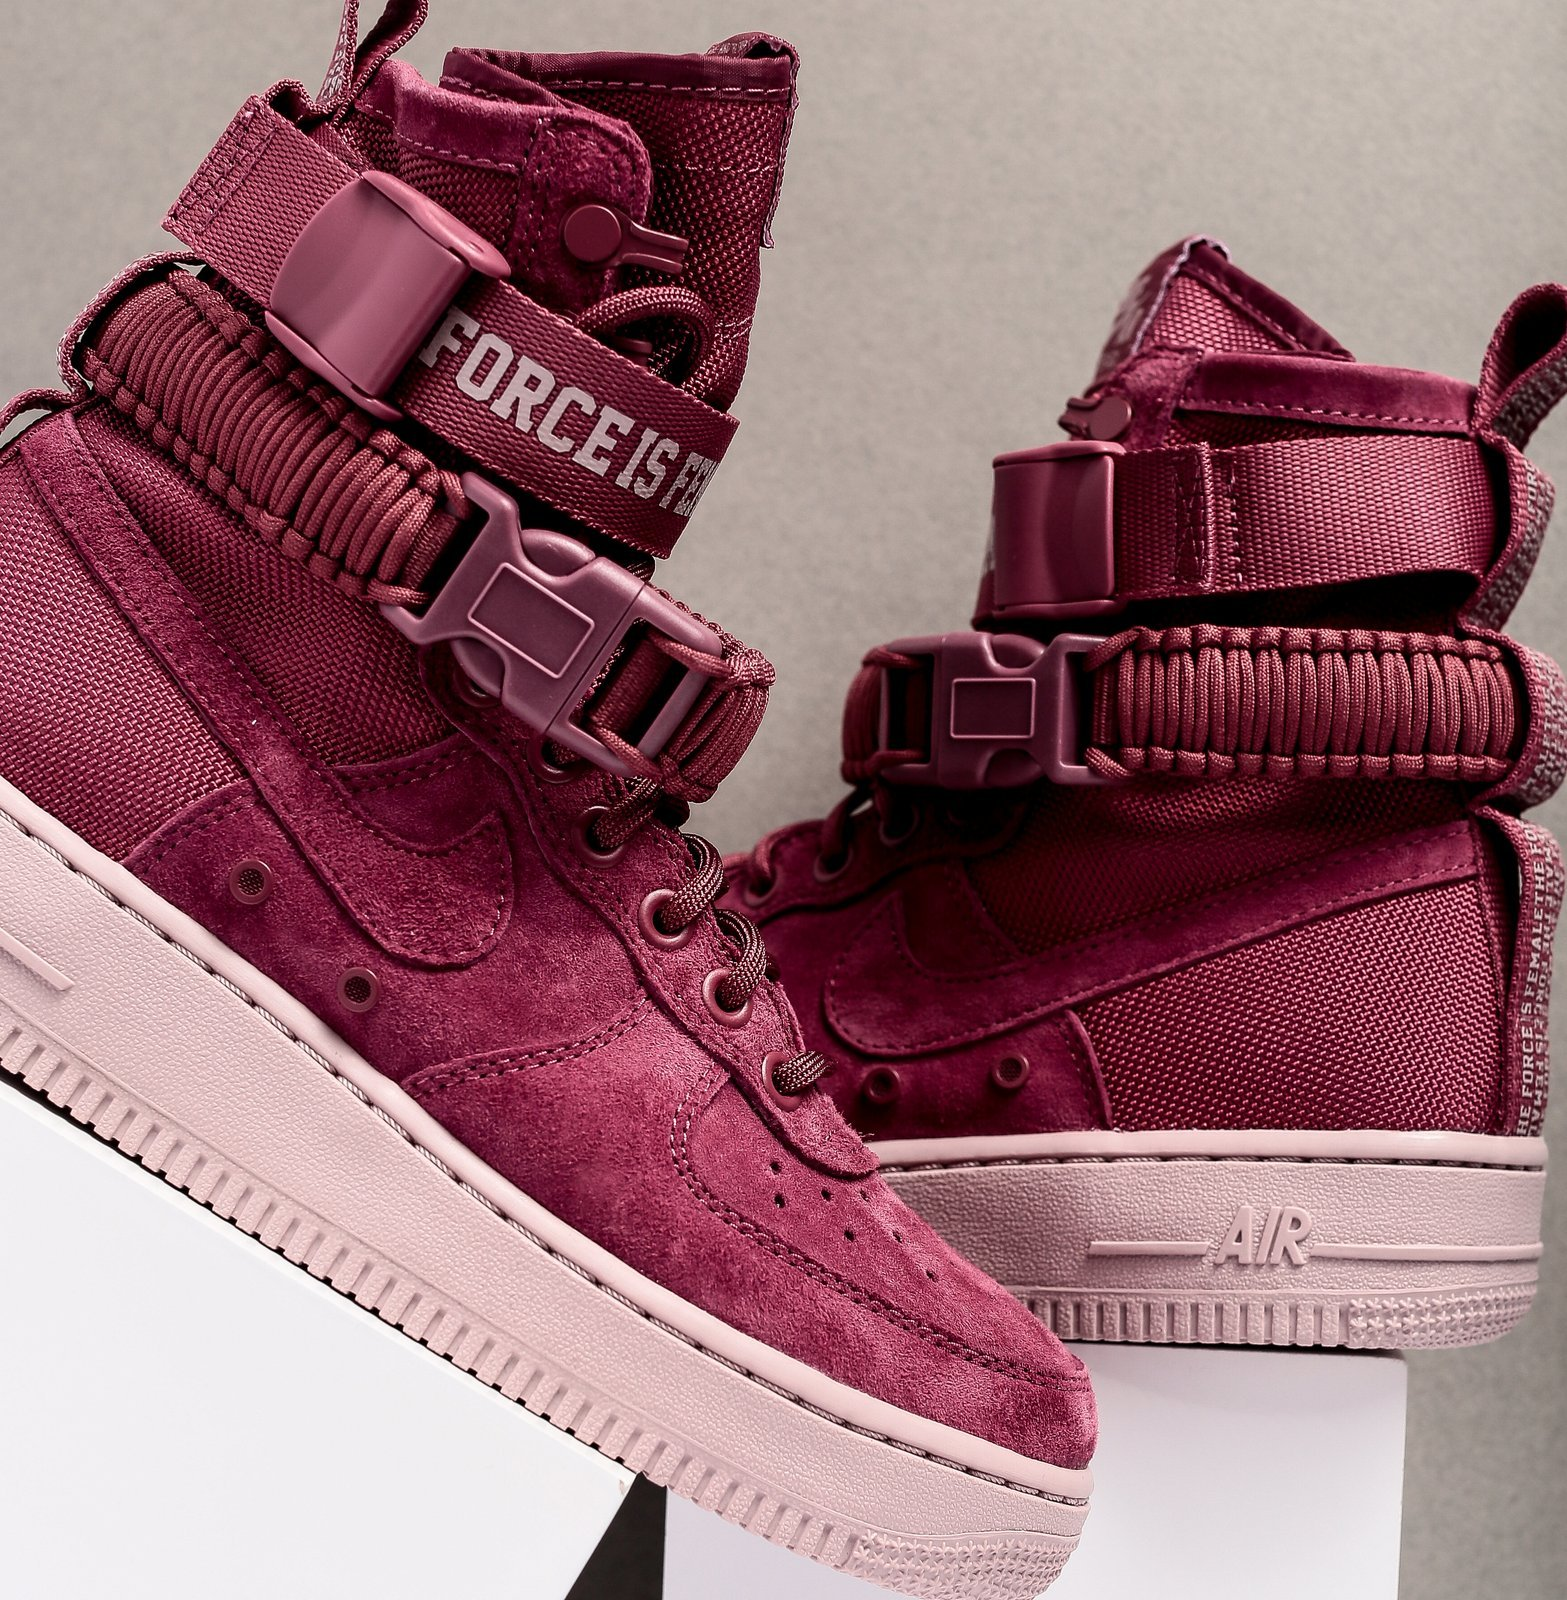 huge discount 185ac ece4f The Nike SF-AF1 'Force is Female' is Arriving at Retailers ...